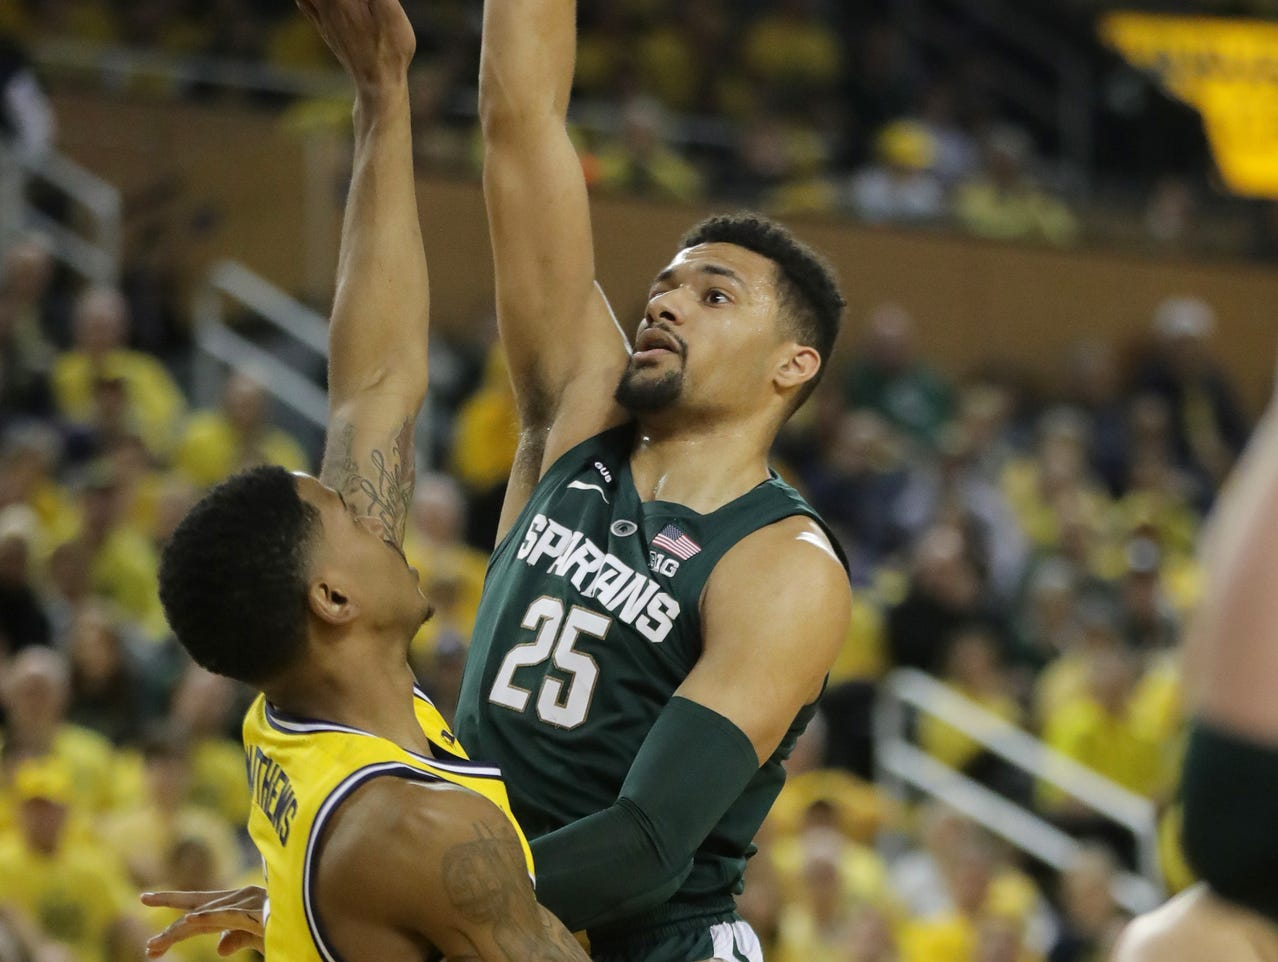 Michigan State forward Kenny Goins scores against Michigan guard Charles Matthews during the first half on Sunday, February 24, 2019 at the Crisler Center in Ann Arbor.